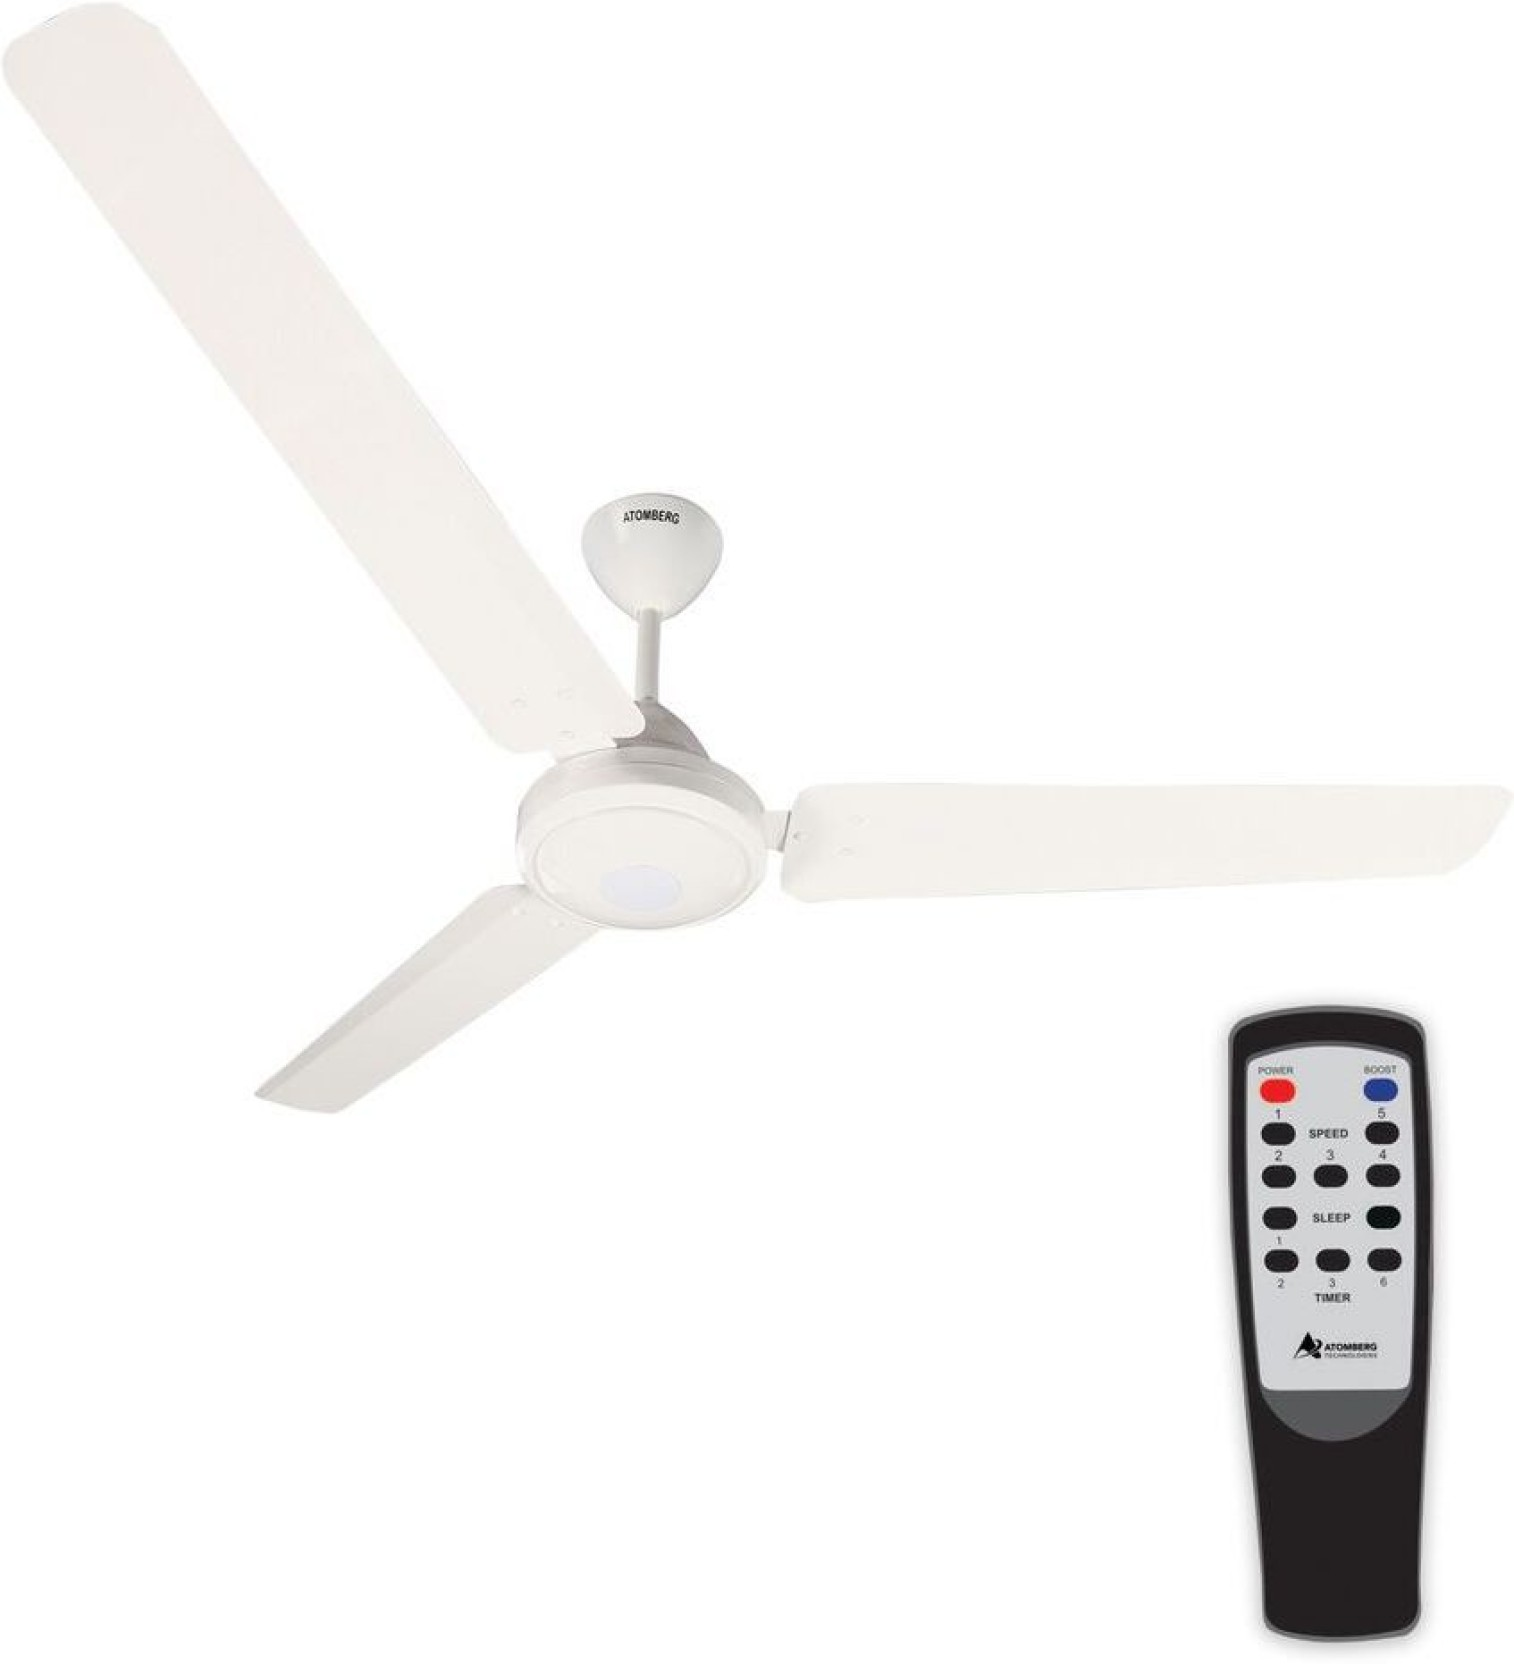 Gorilla E1 1200 Bldc Motor With Remote Control 3 Blade Ceiling Fan Wiring On Without Mount Light Moreover Install Offer